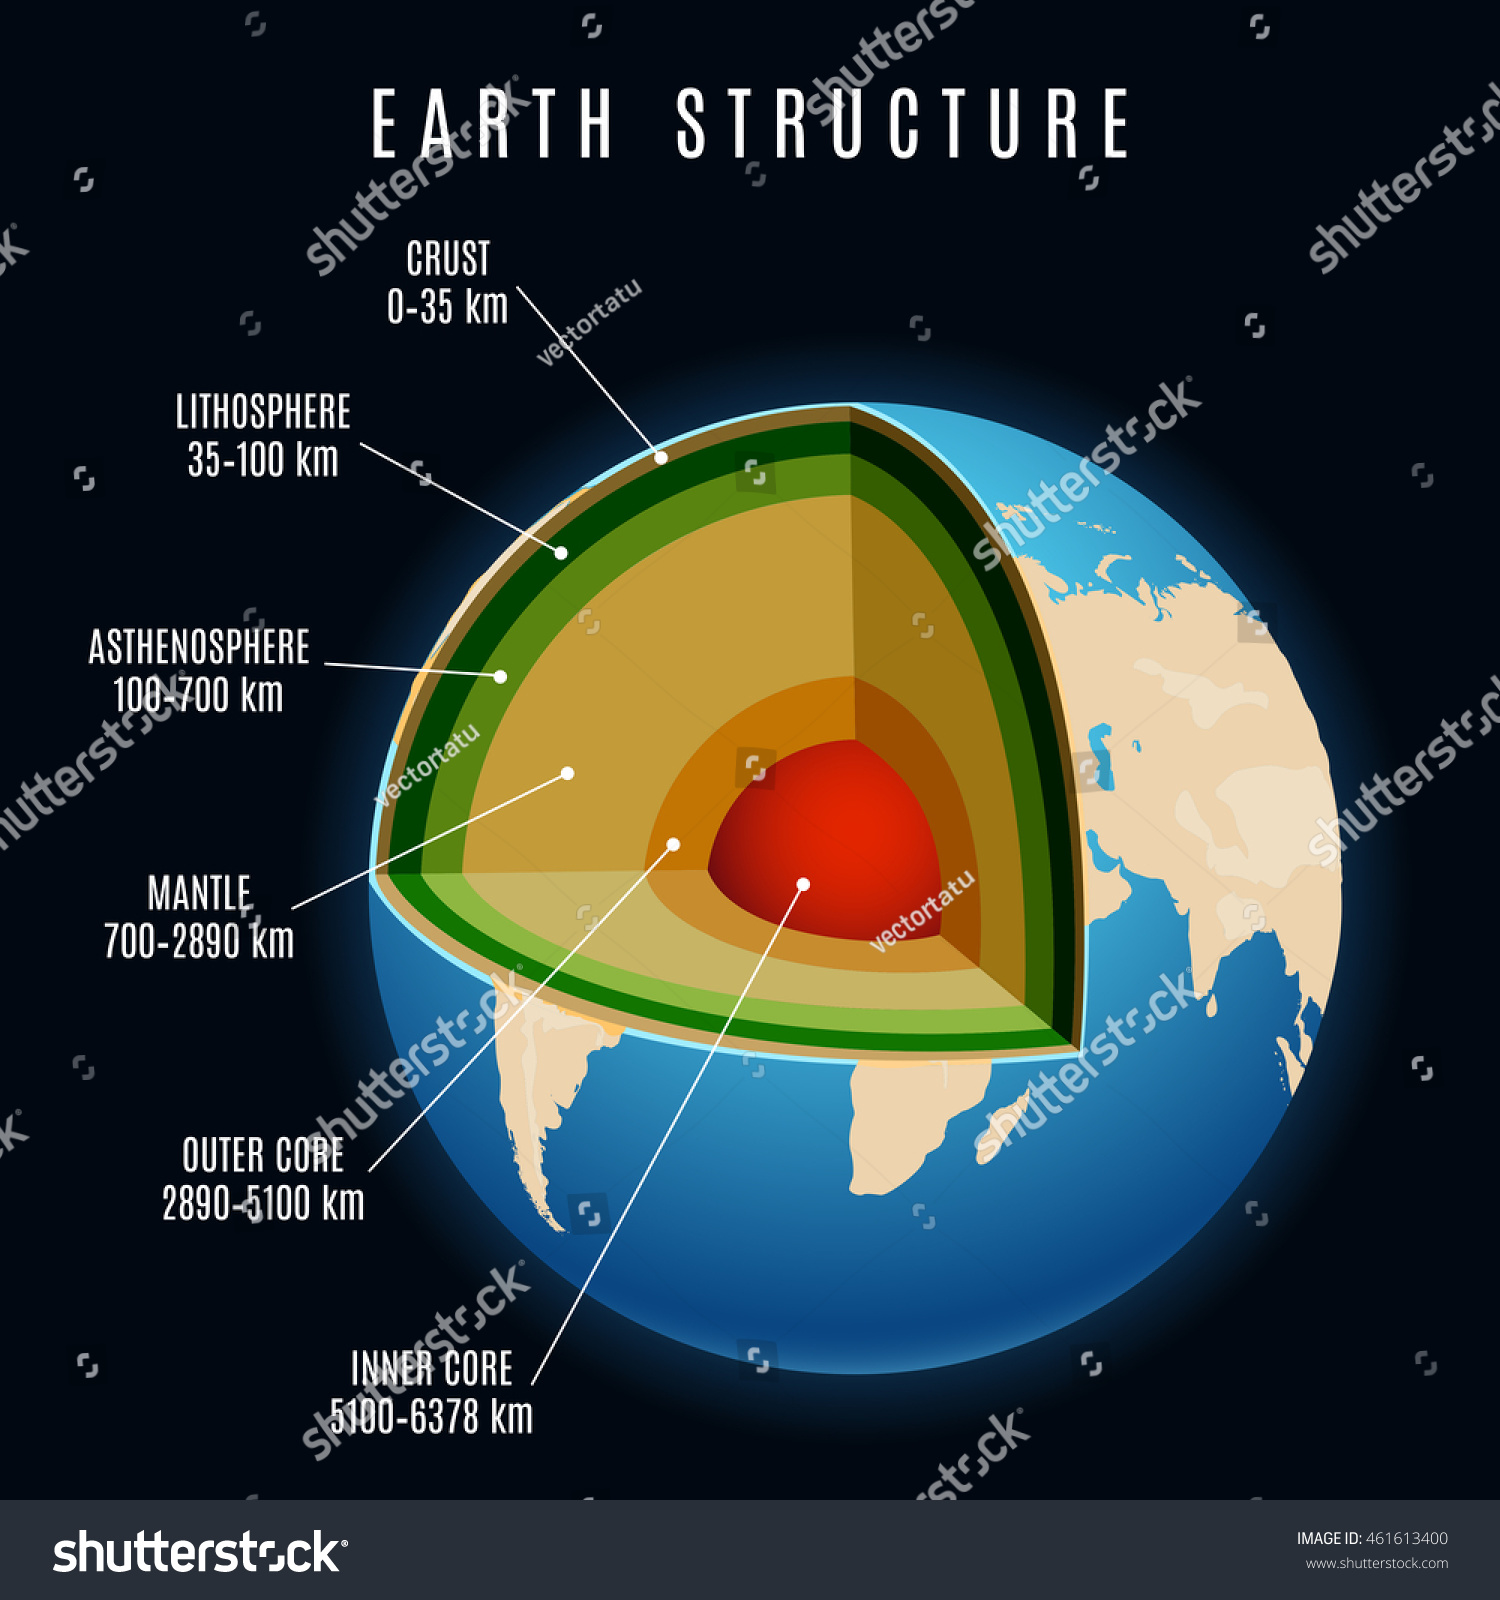 Earth Structure Lithosphere Continental Crust Earth Stock